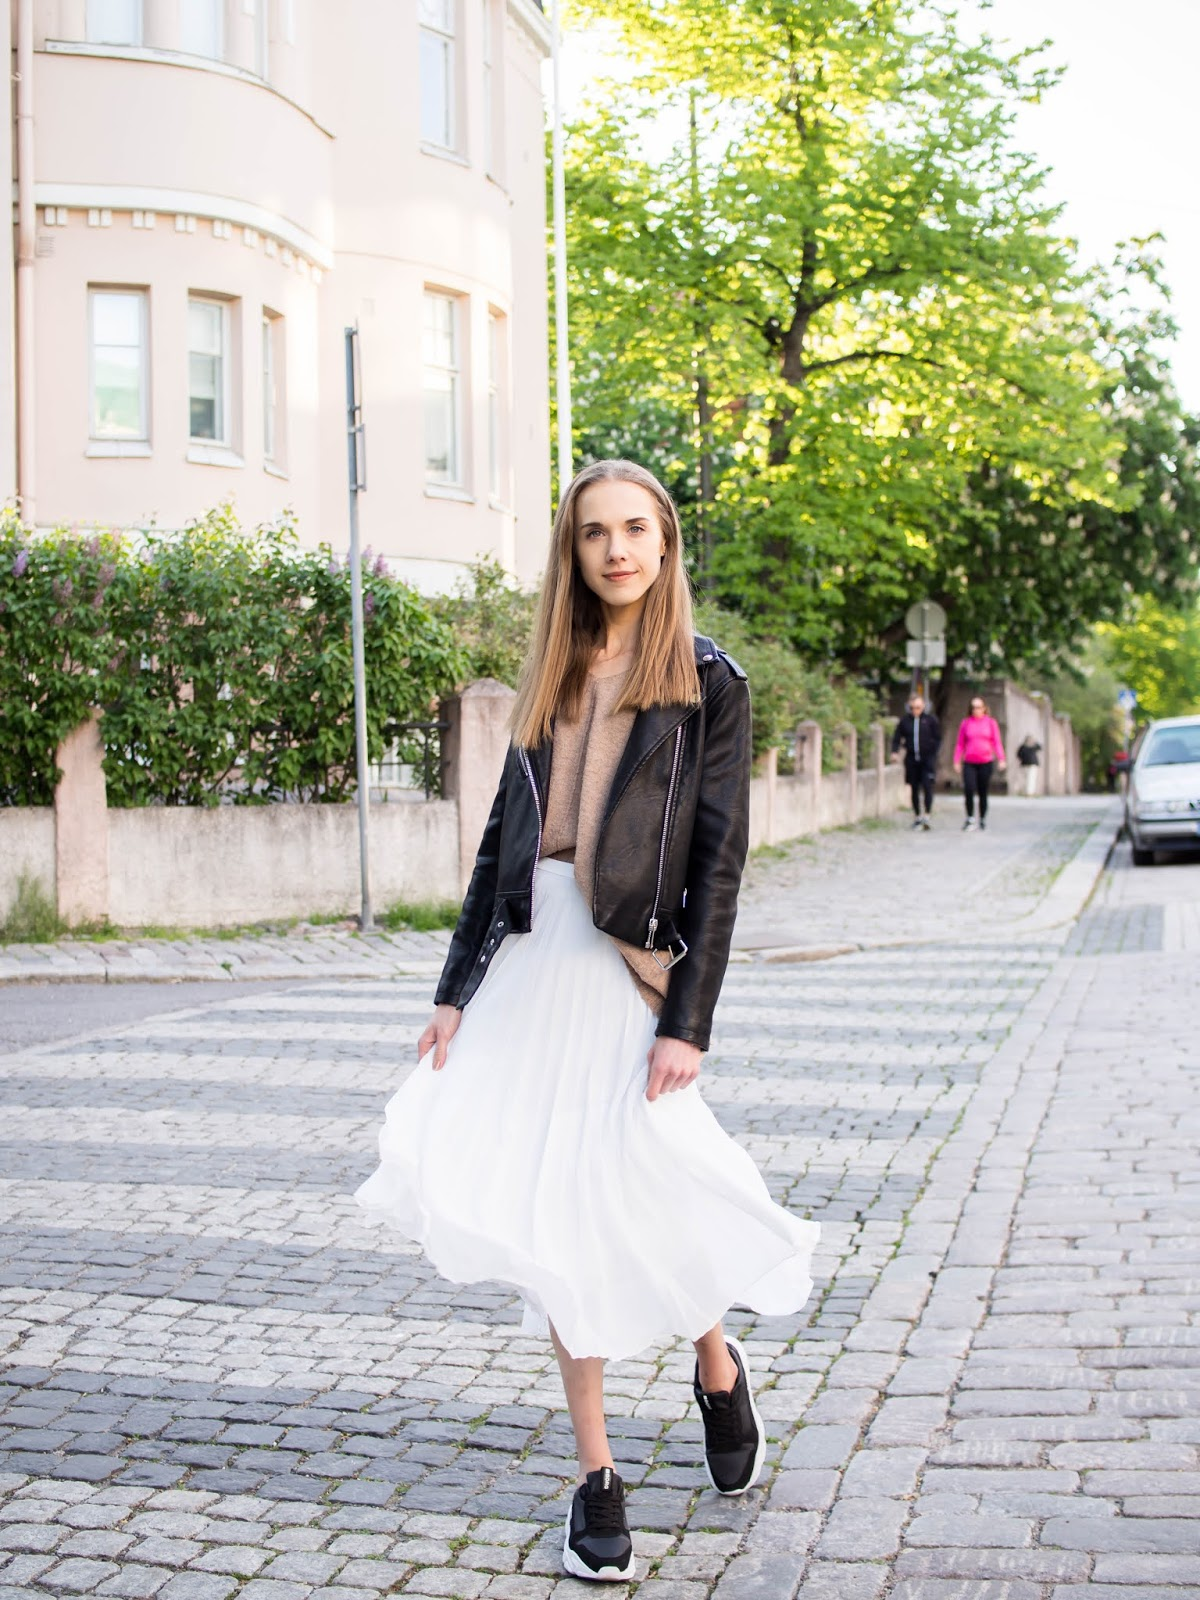 Outfit with white pleated midi skirt and black leather jacket - Valkoinen midihame ja musta nahkatakki